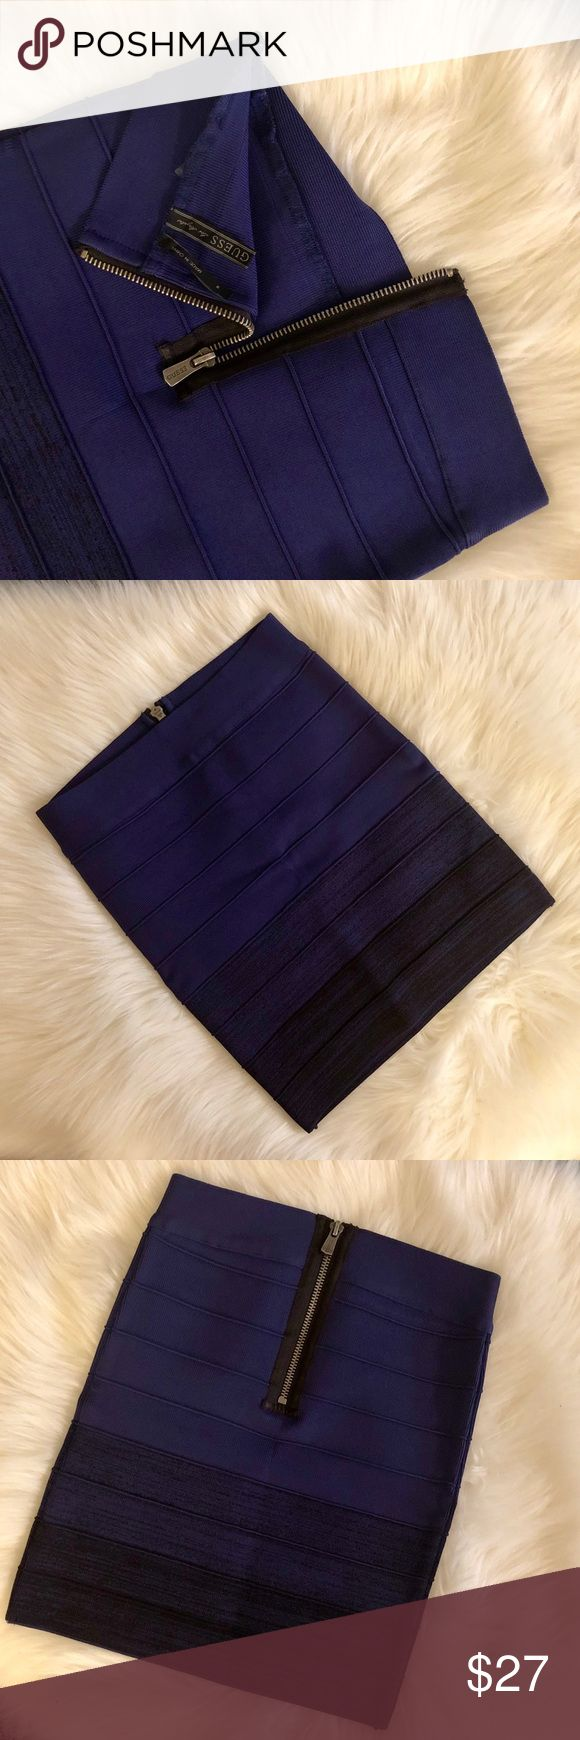 GUESS Bodycon Bandage Mini Skirt GUESS Los Angeles Bodycon Bandage Mini Skirt in gradient purple, Size: Small  Brand new skirt, excellent condition (never worn, never washed, etc.). Dimensions are as pictured. I wish I could still fit in it! 😂🙈 Guess Skirts Mini